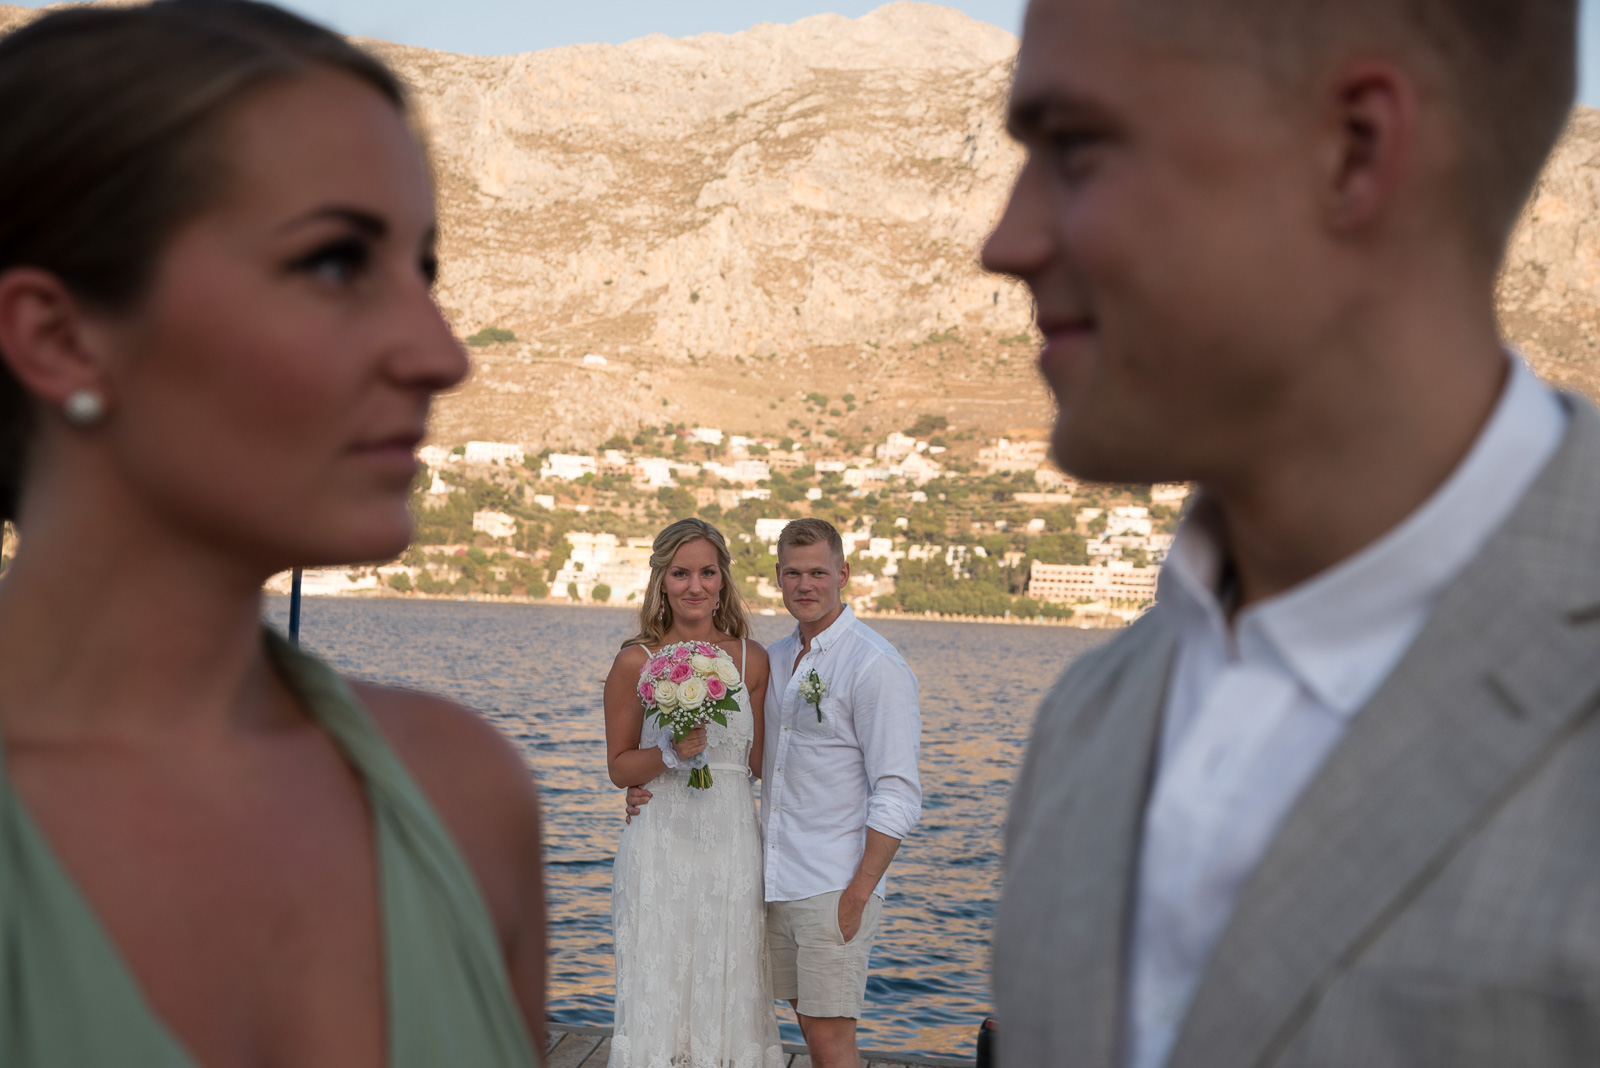 Amazing wedding photograph in Greece